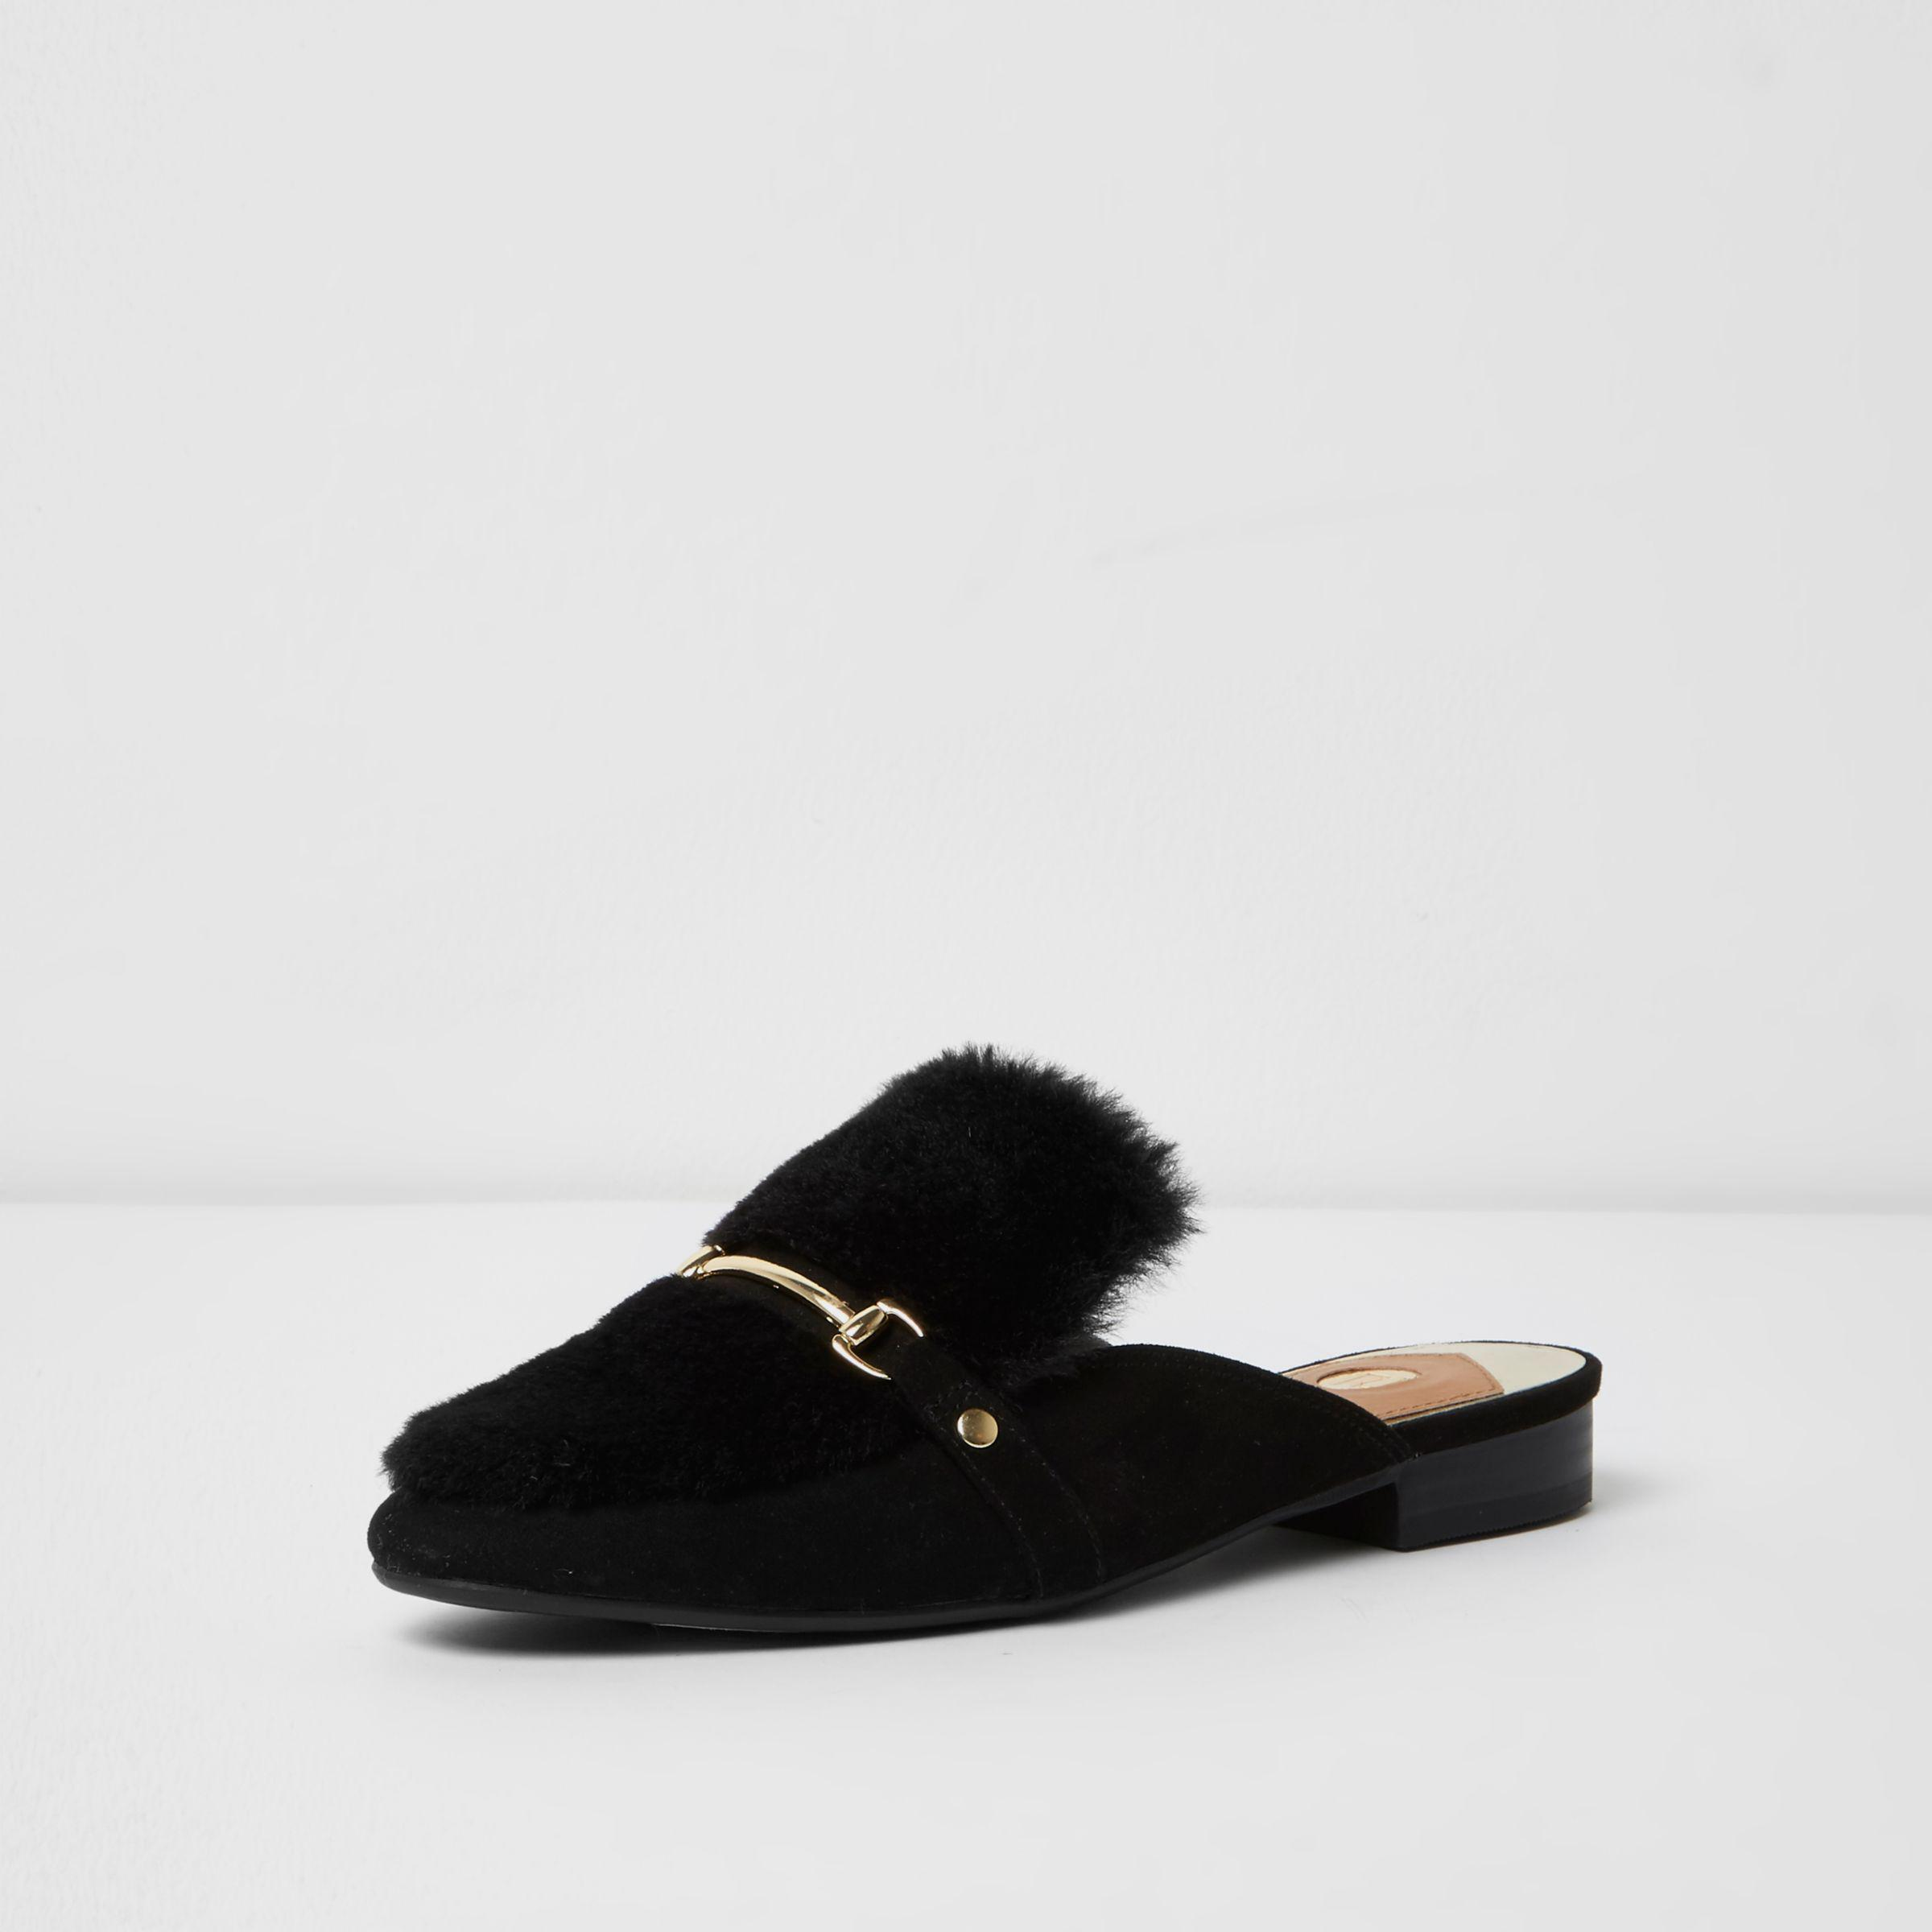 ab7eccb92e7 Lyst - River Island Black Fur Snaffle Backless Loafers in Black